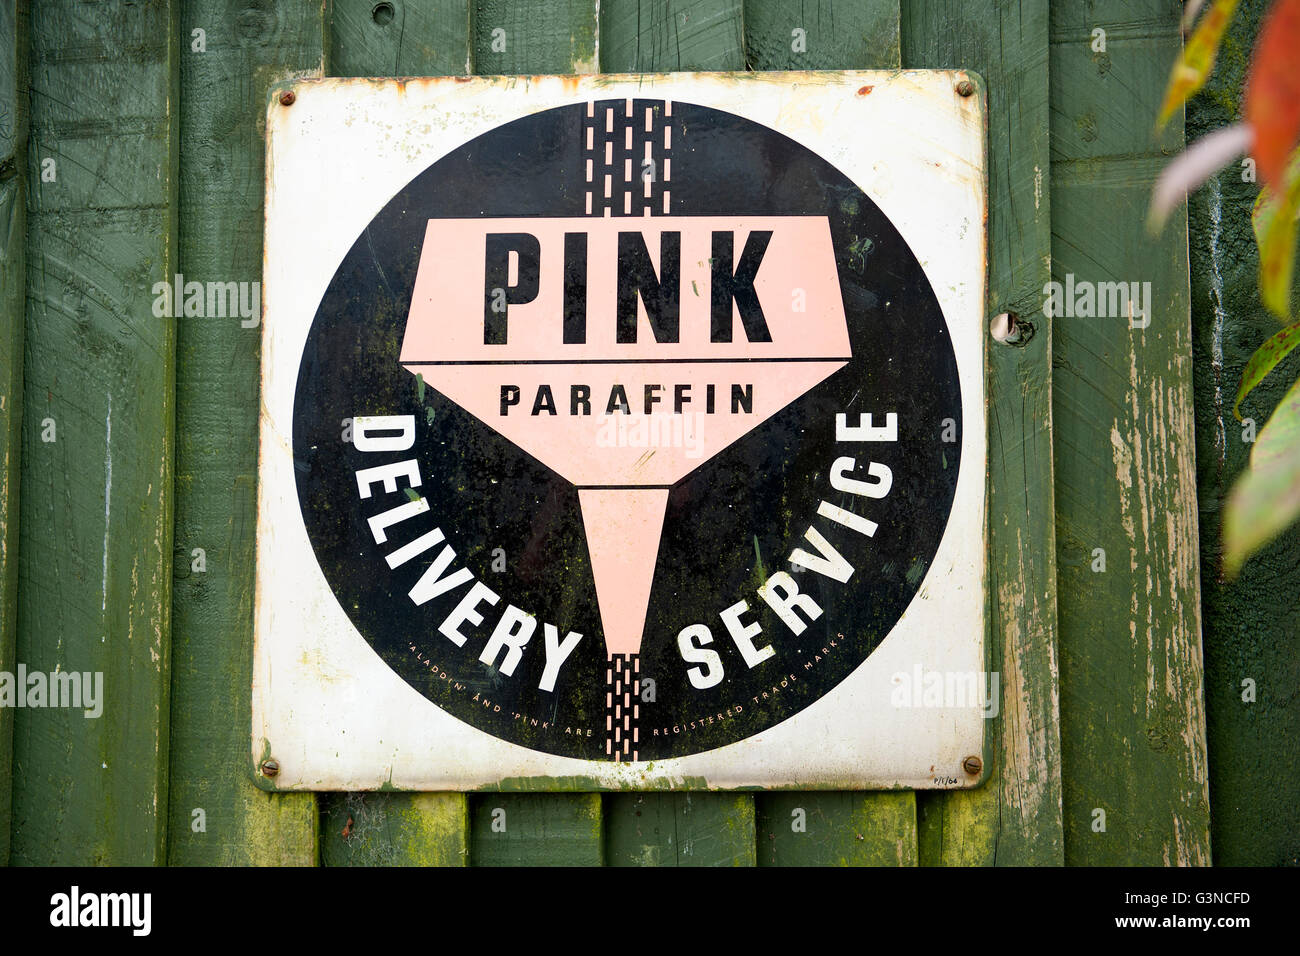 vintage enamel sign photos vintage enamel sign images alamy. Black Bedroom Furniture Sets. Home Design Ideas